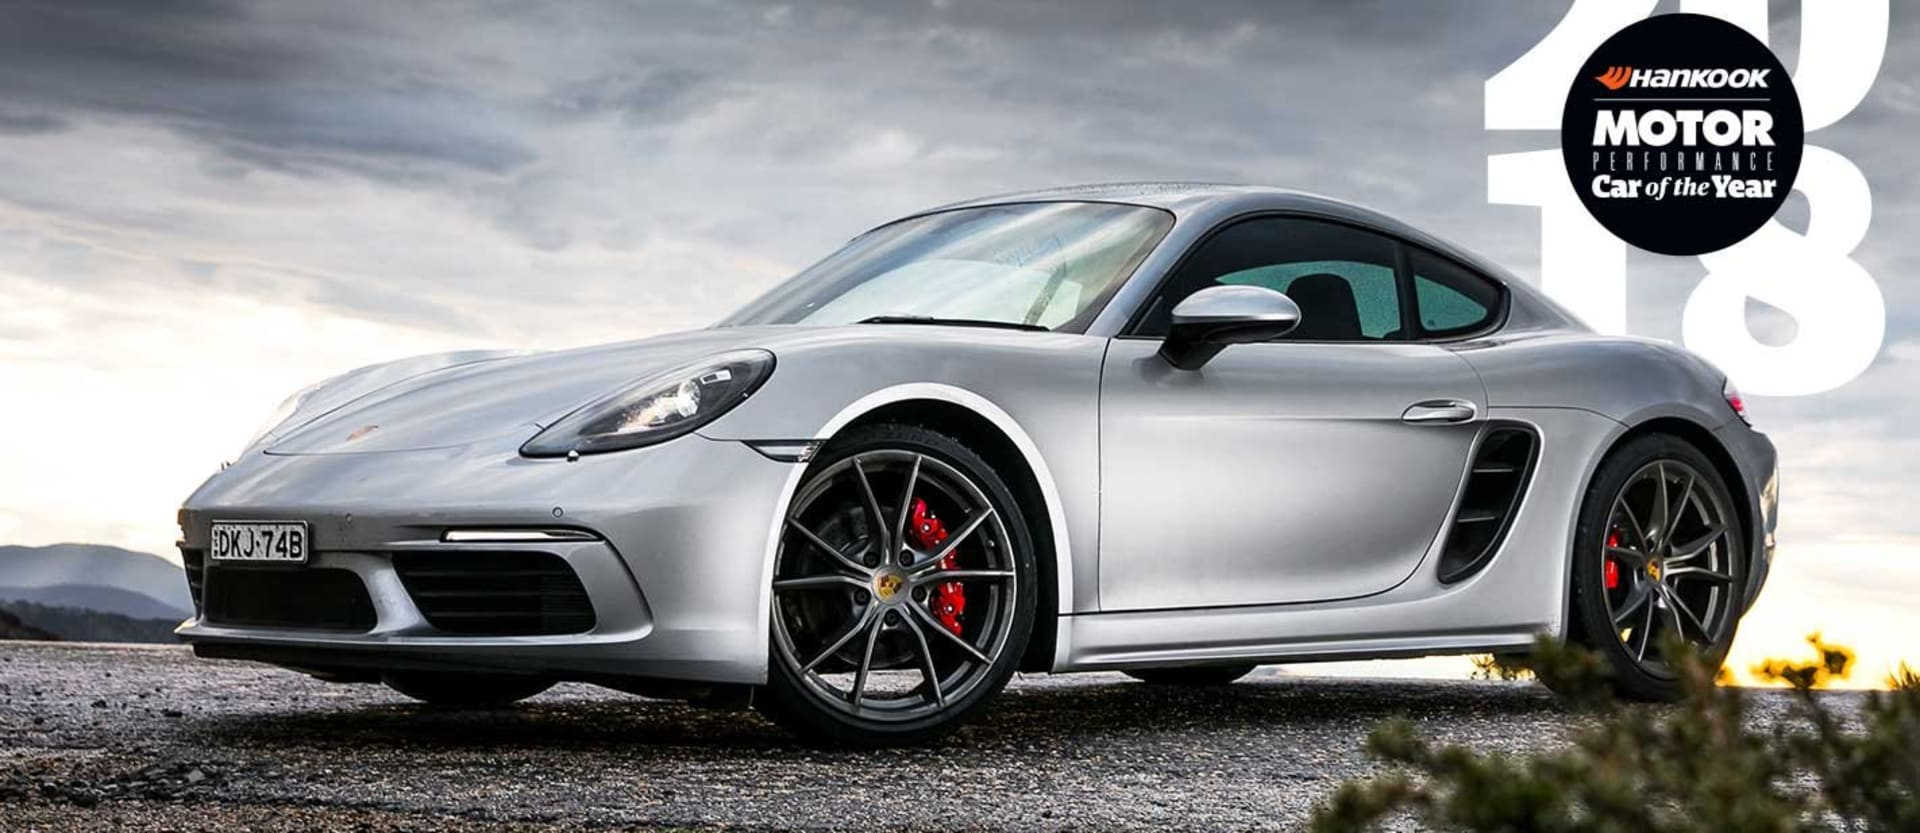 Porsche 718 Cayman S Performance Car of the Year 2018 3rd Place feature